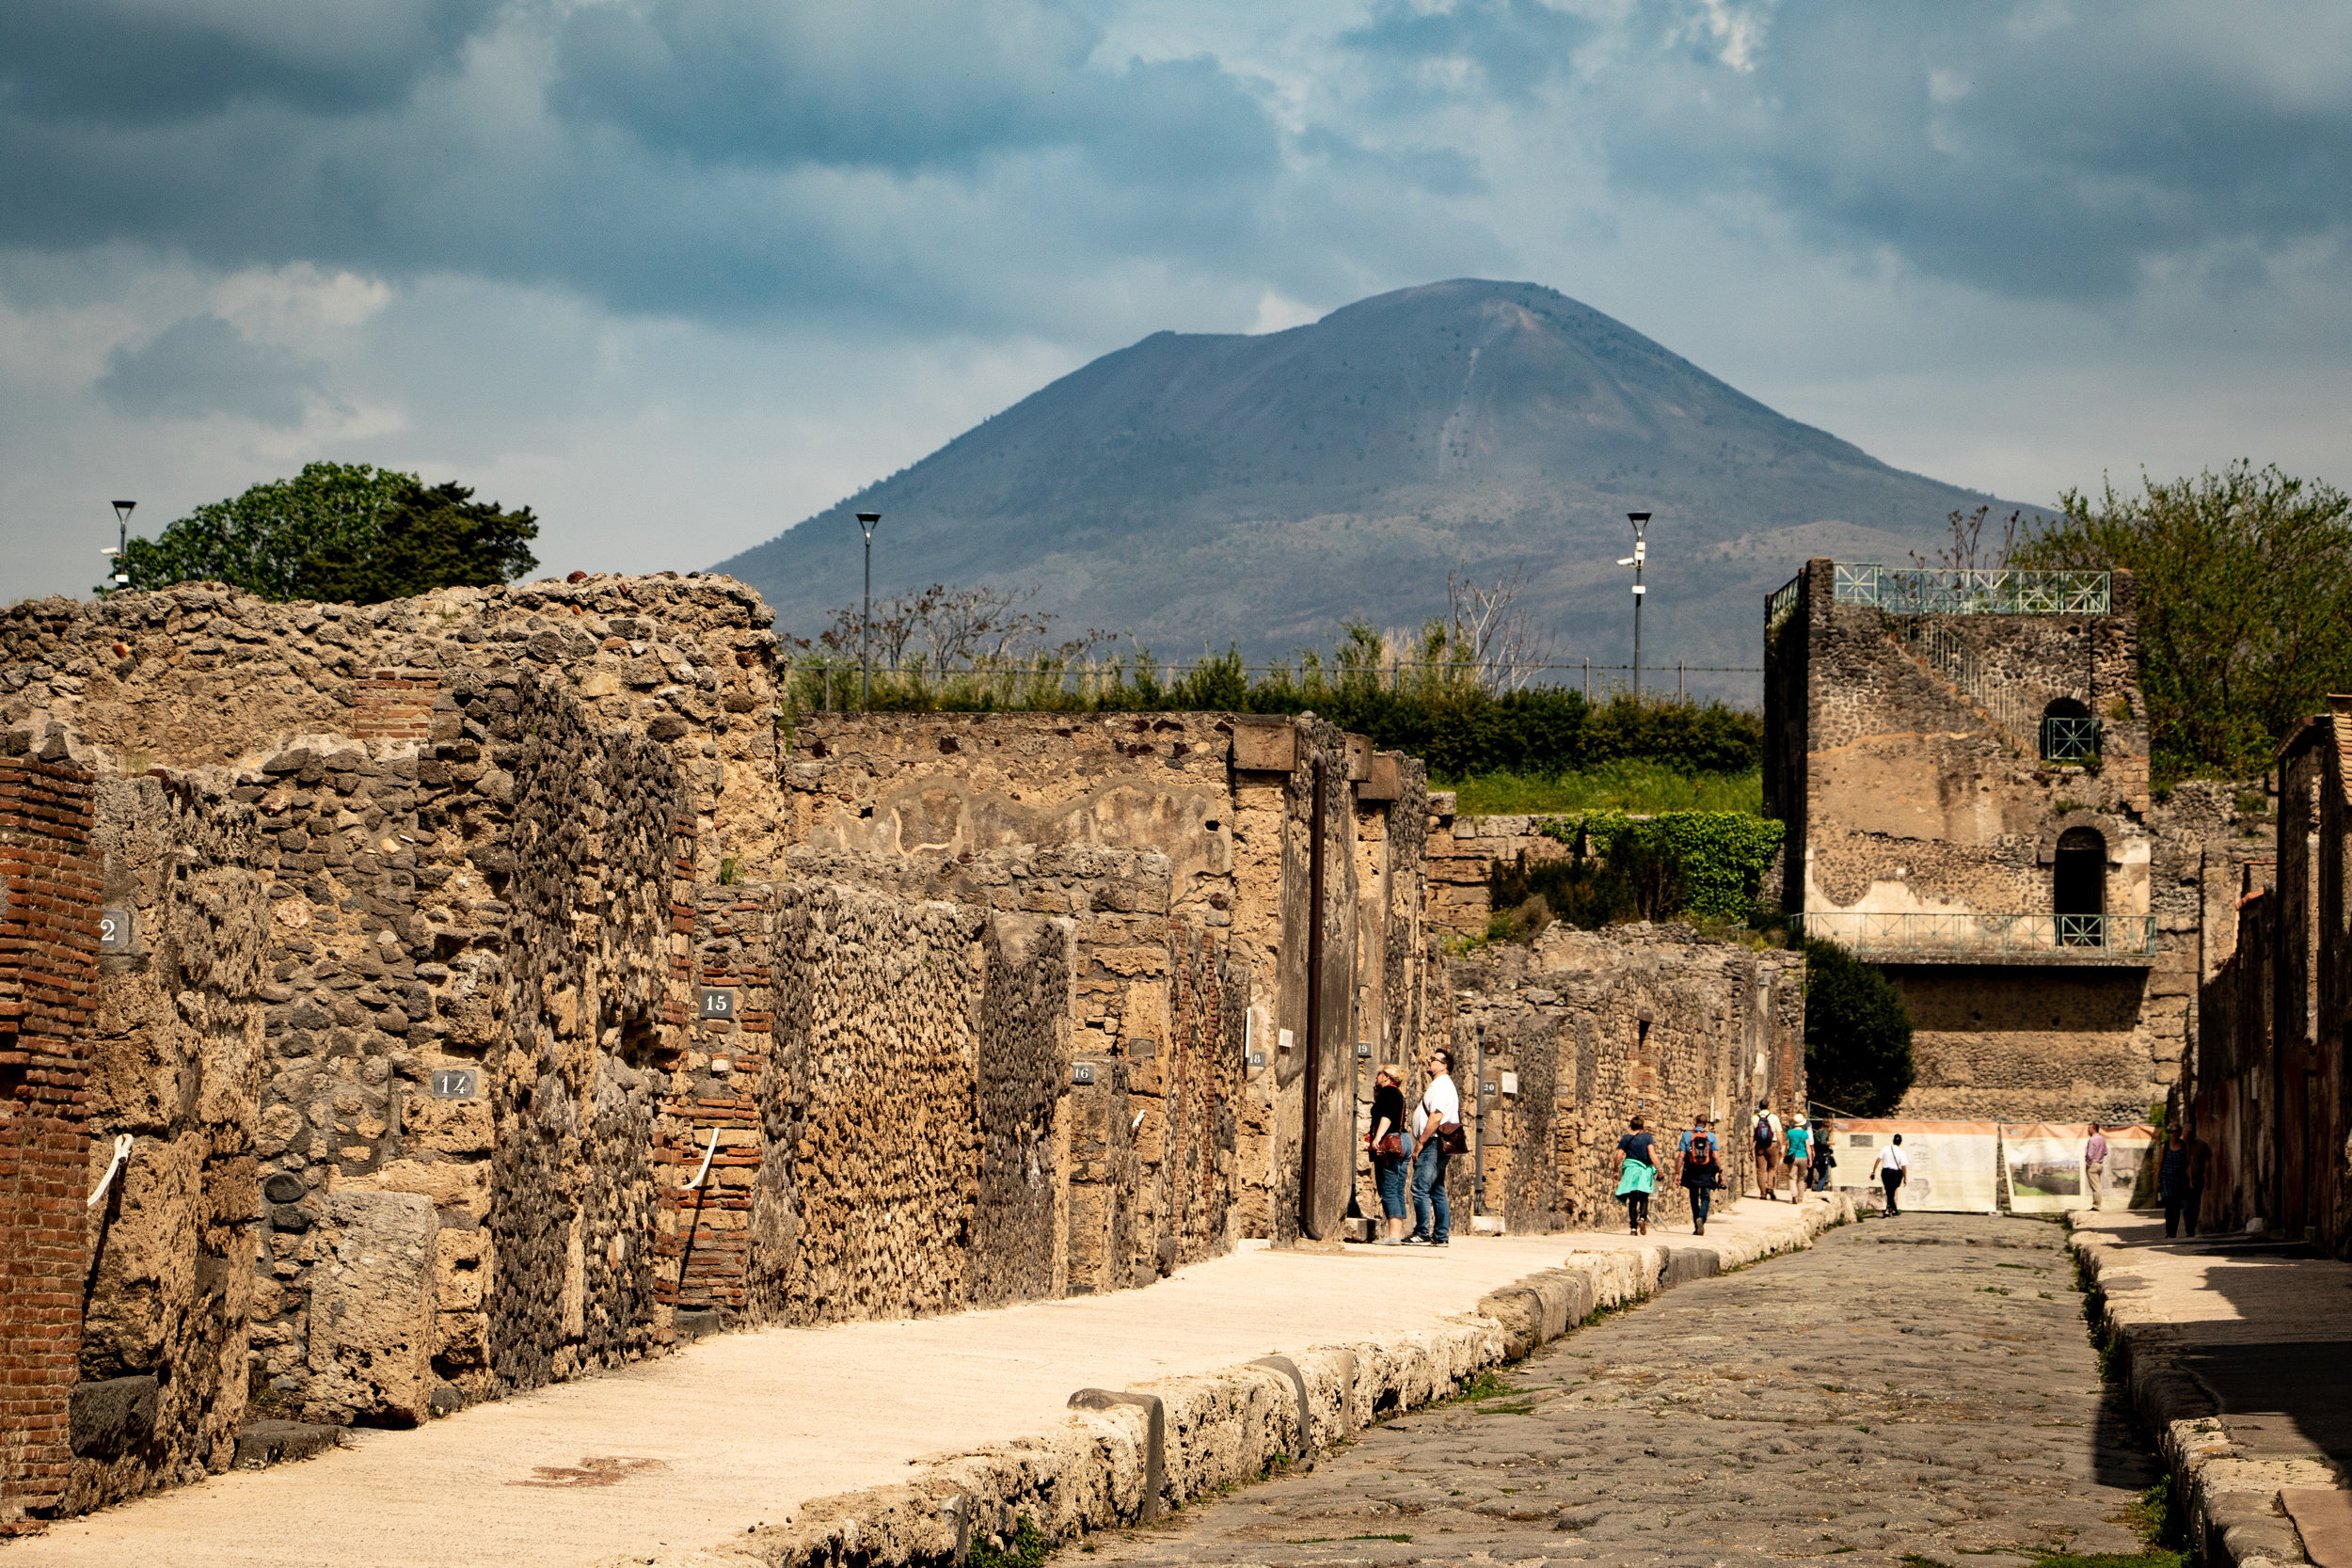 Mount Vesuvius is the volcano that destroyed Pompei in A.D 79